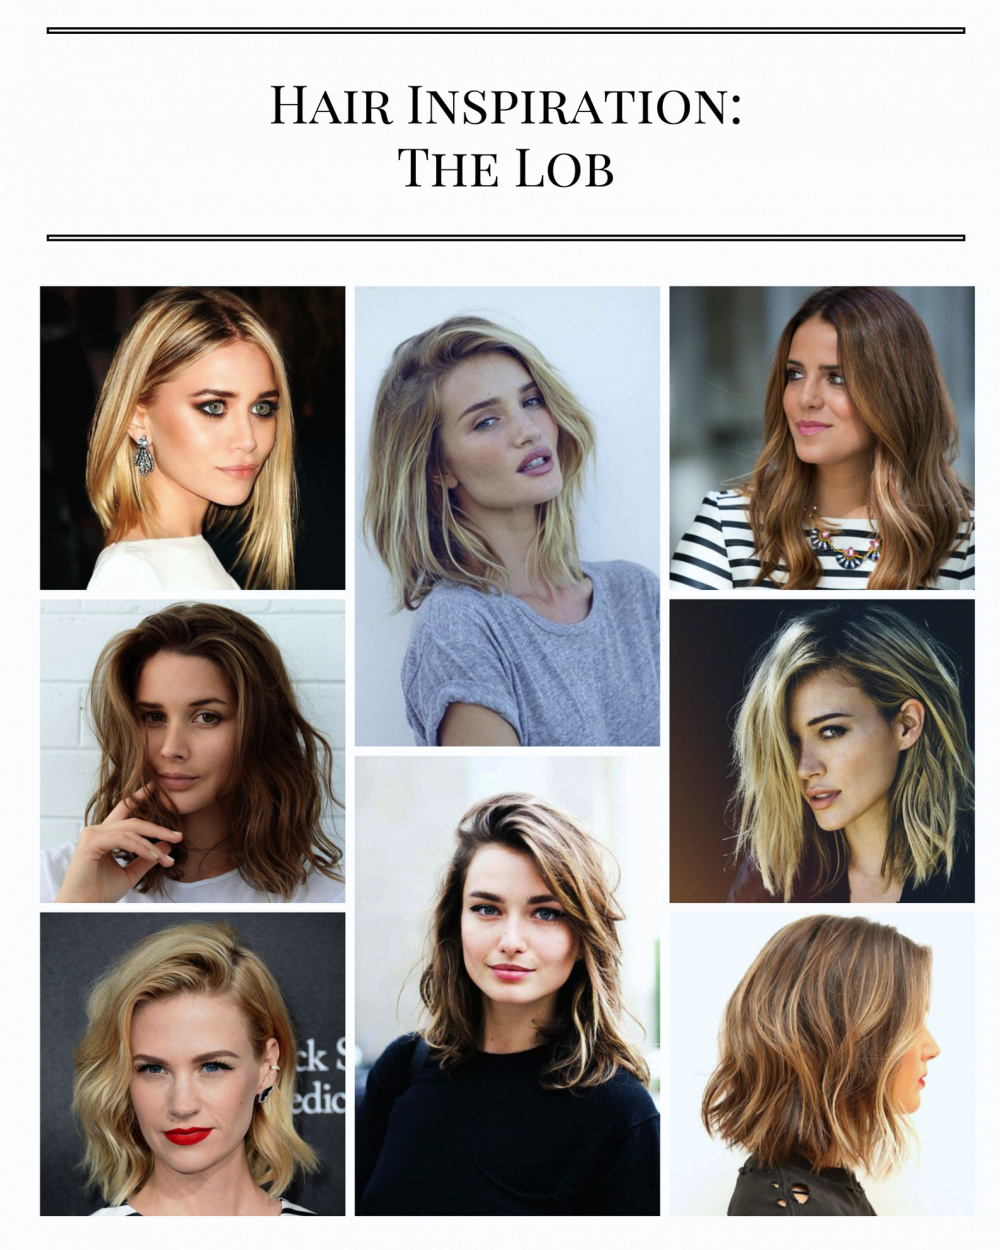 Hair Inspiration: The Lob